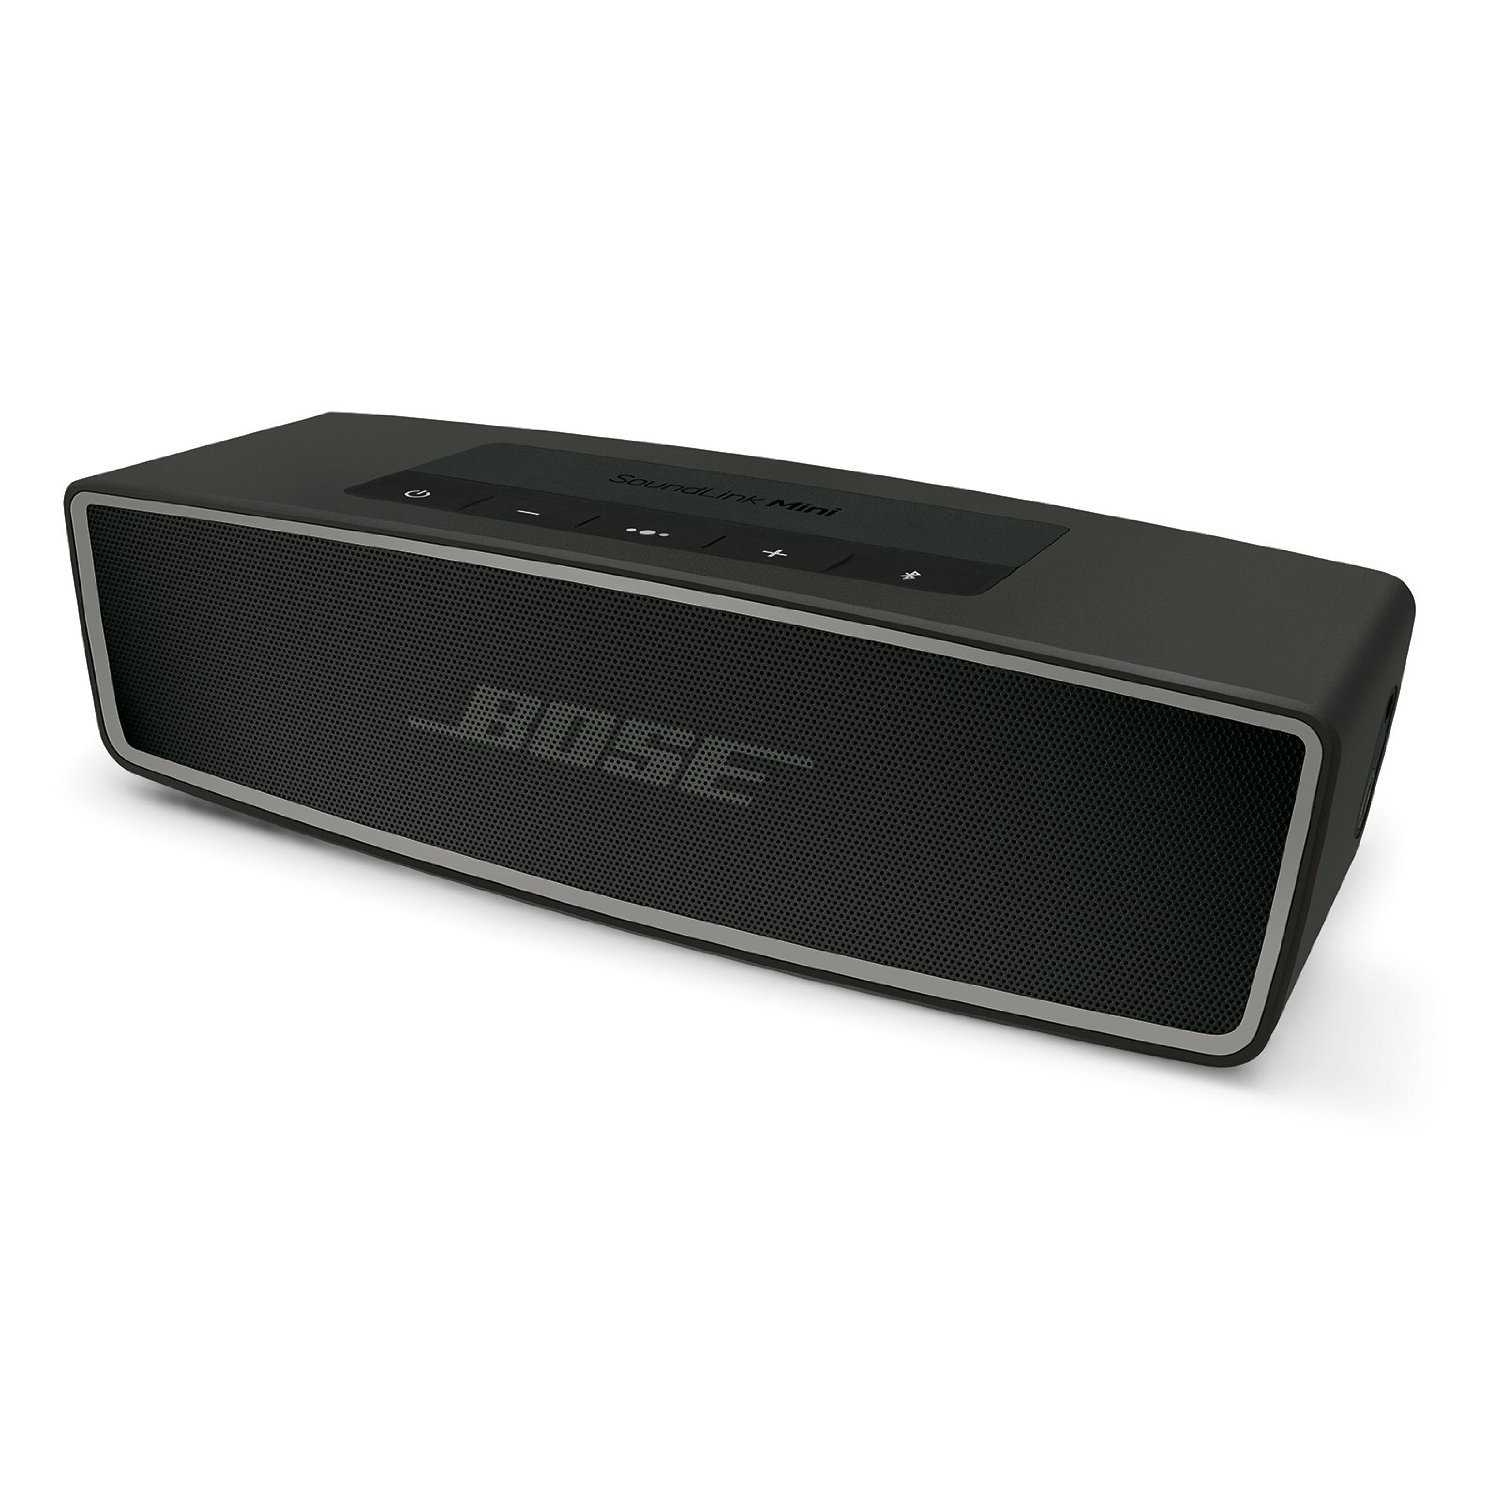 Bose SoundLink Mini II Wireless Bluetooth Speaker Image